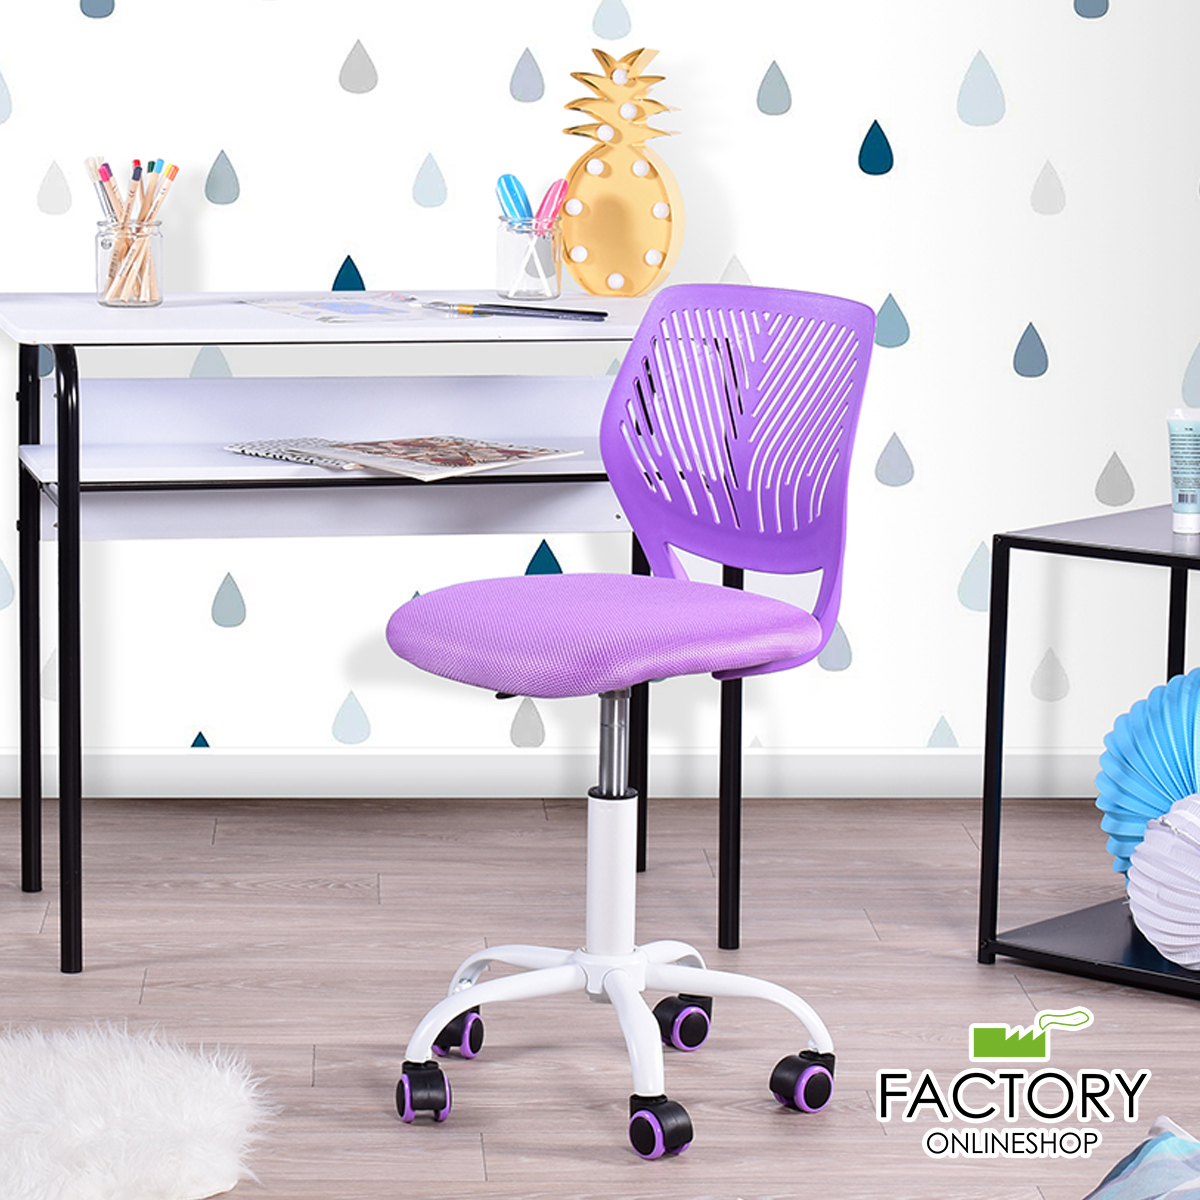 Enjoyable Details About Office Chair Purple Swivel Computer Task Student Seat Desk Kids Room Adjustable Ncnpc Chair Design For Home Ncnpcorg